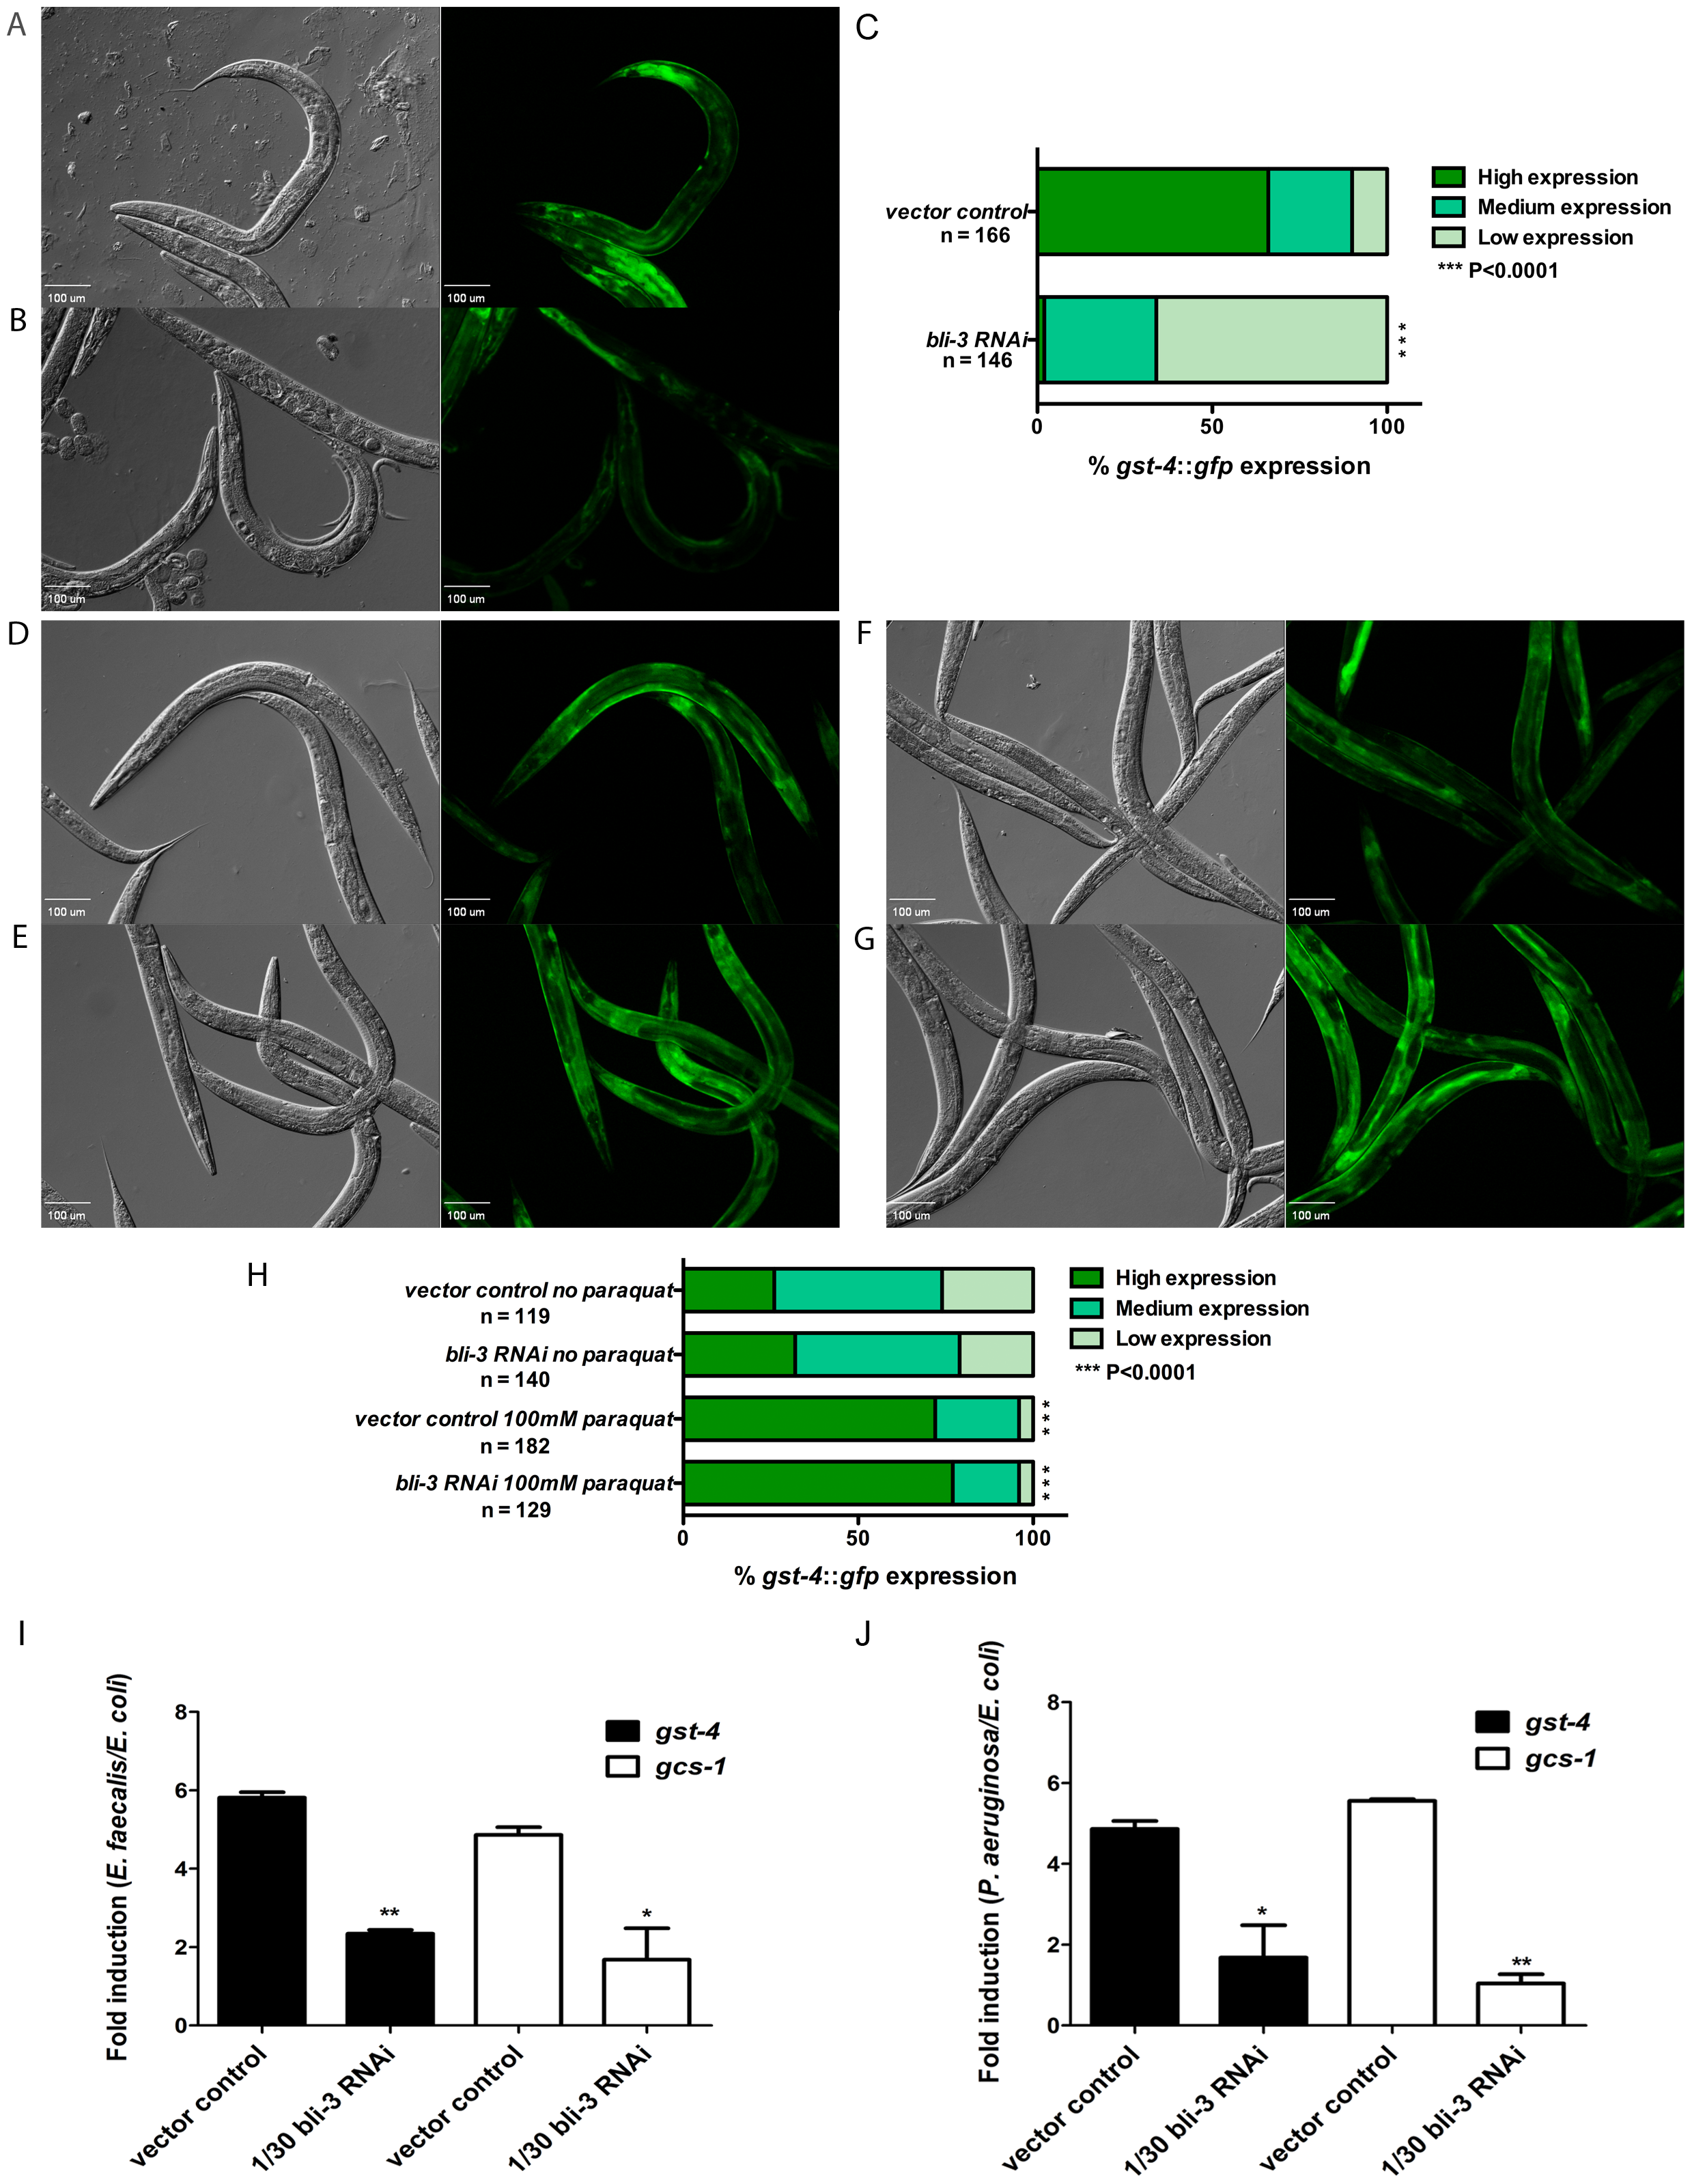 SKN-1 dependent genes are induced in response to ROS produced by Ce-Duox1/BLI-3 during infection.